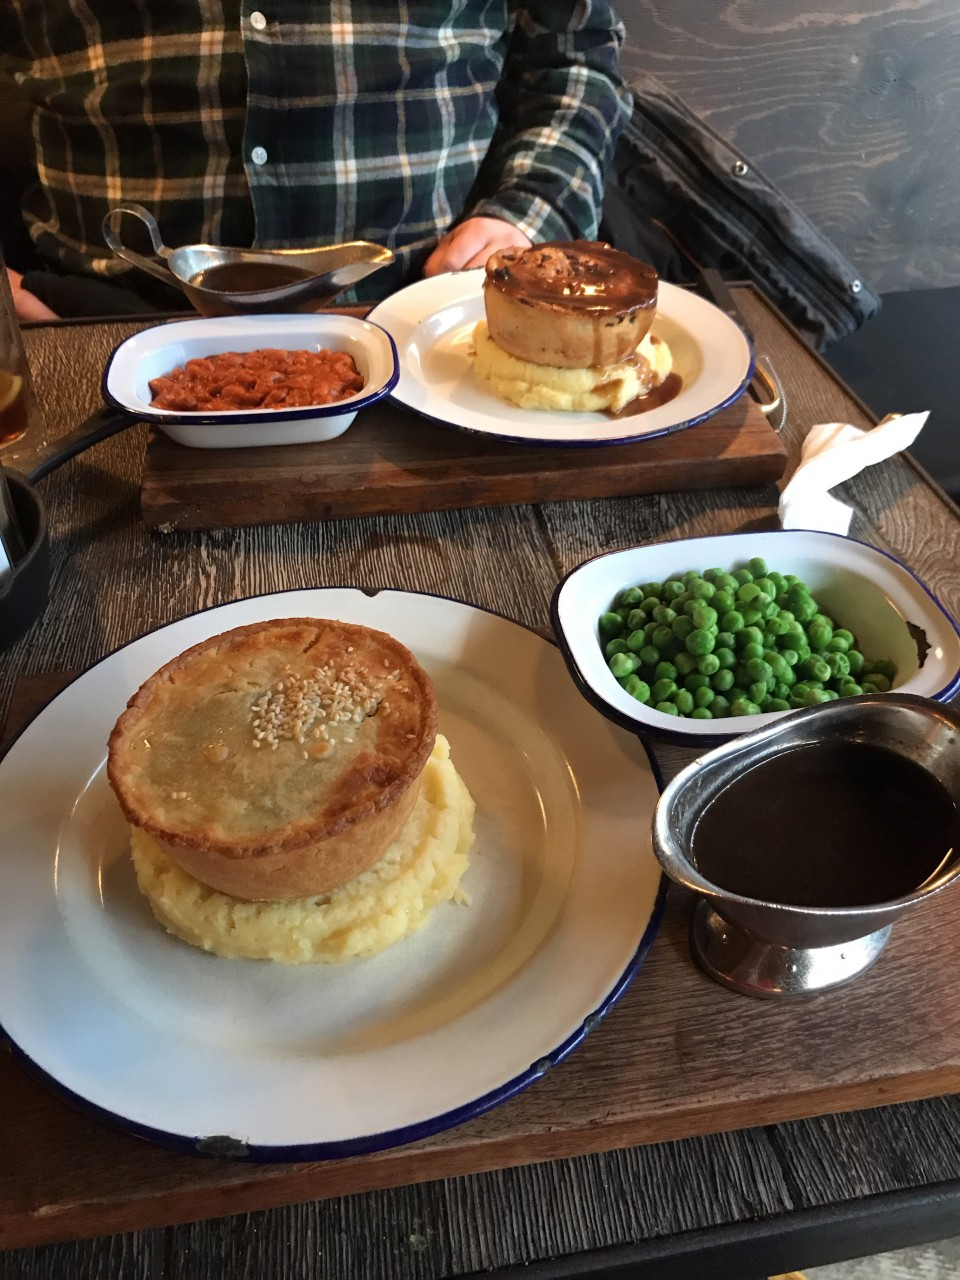 Image of two pies on a table, both sit on a bed of mashed potato on a plate, with accompaniments in separate dishes to the side. The side dishes have peas, beans, and gravy in them.